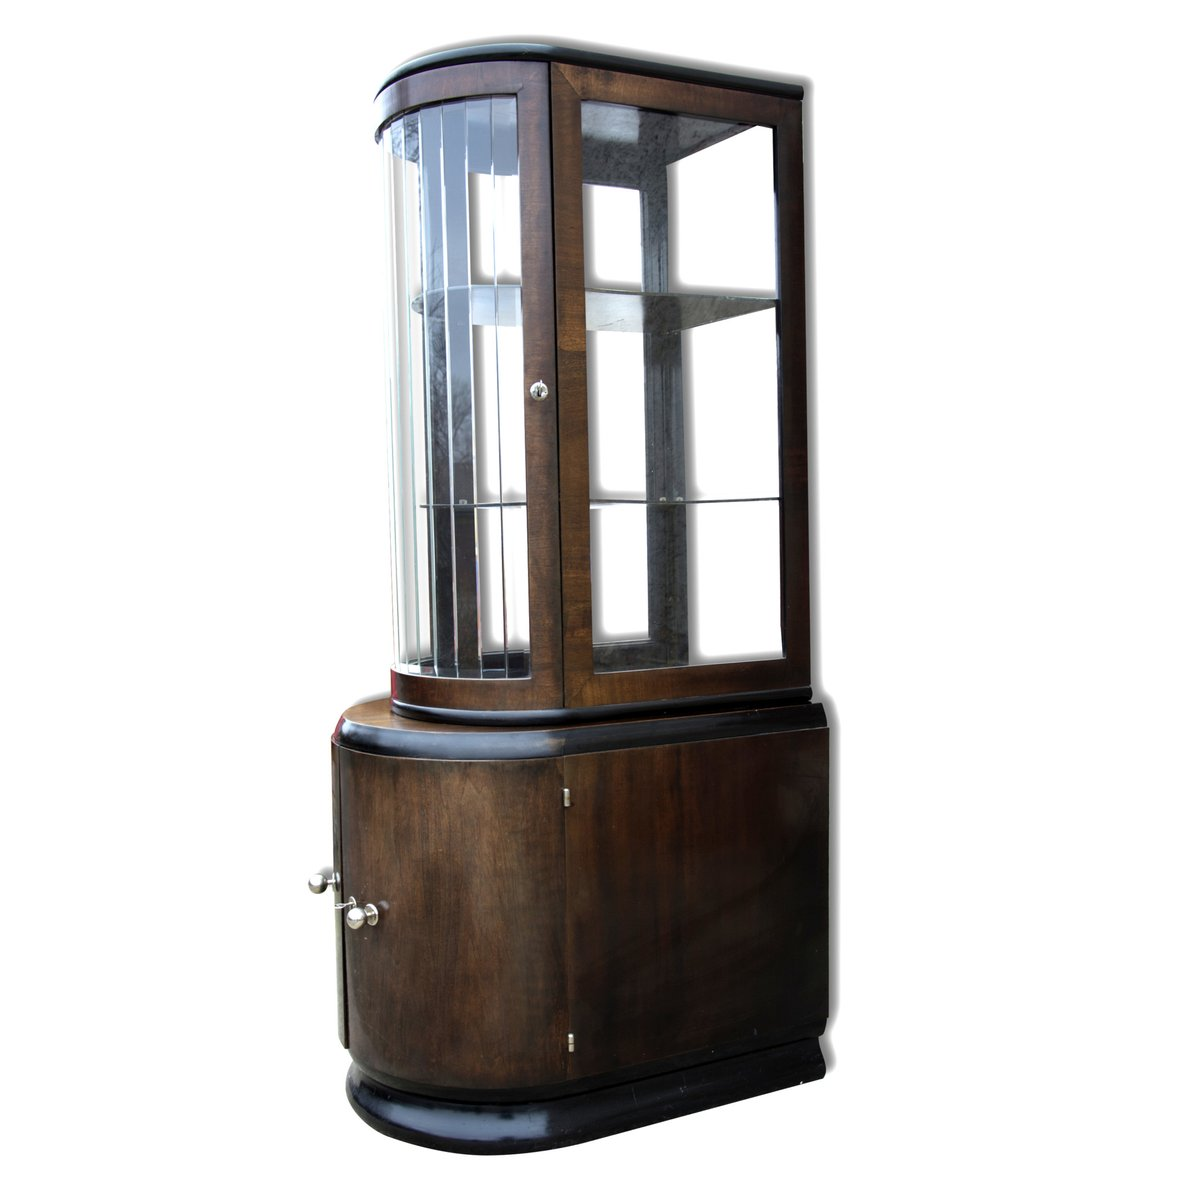 Art deco walnut veneer liquor cabinet 1930s for sale at for Miroir art deco 1930